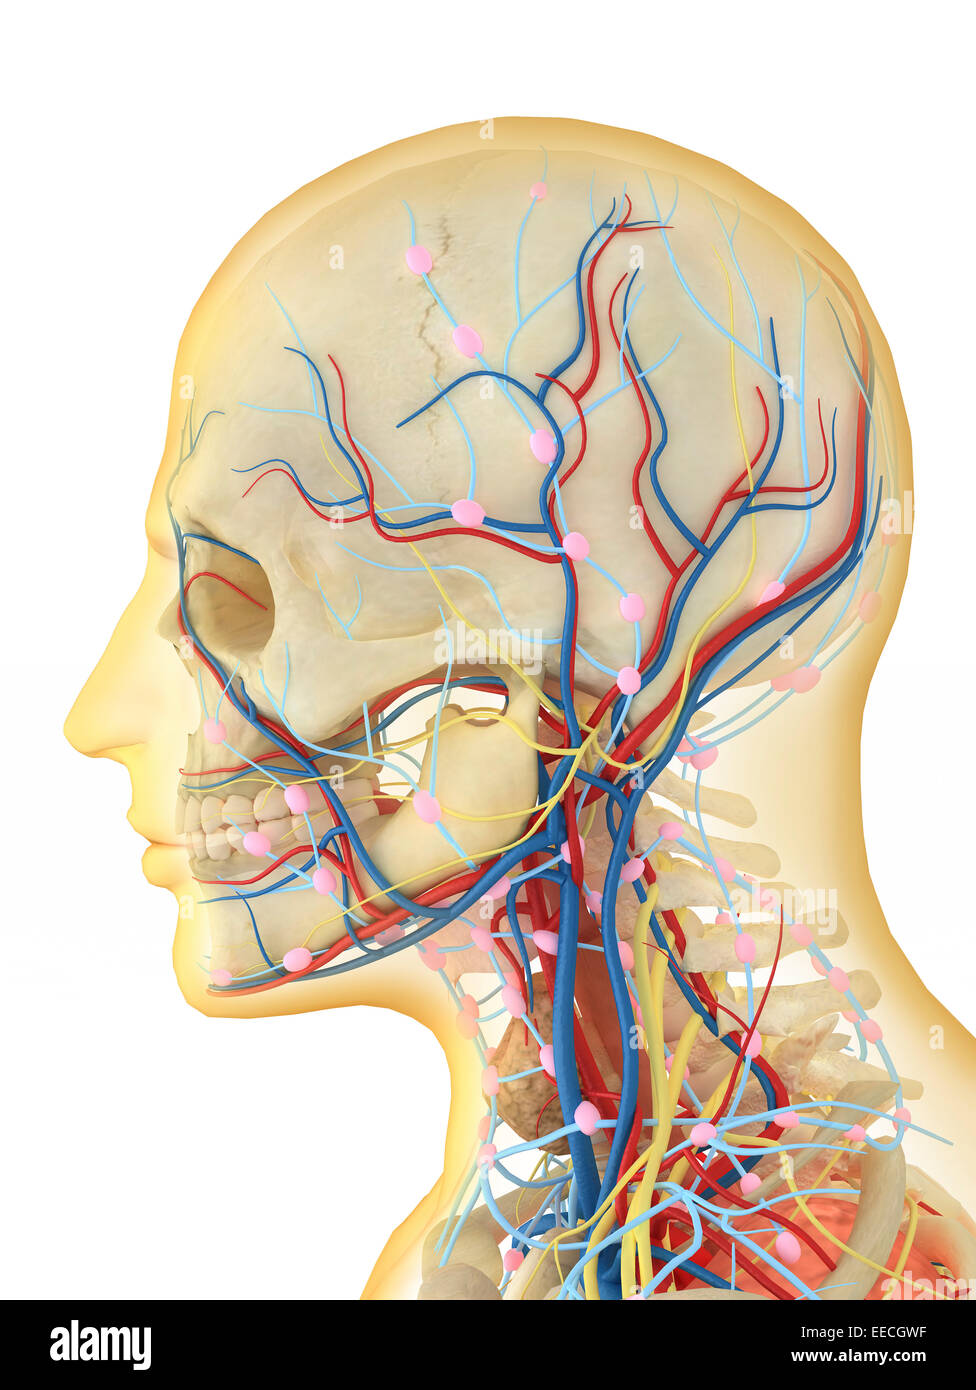 medium resolution of human face and neck area with internal throat parts nervous system lymphatic system and circulatory system